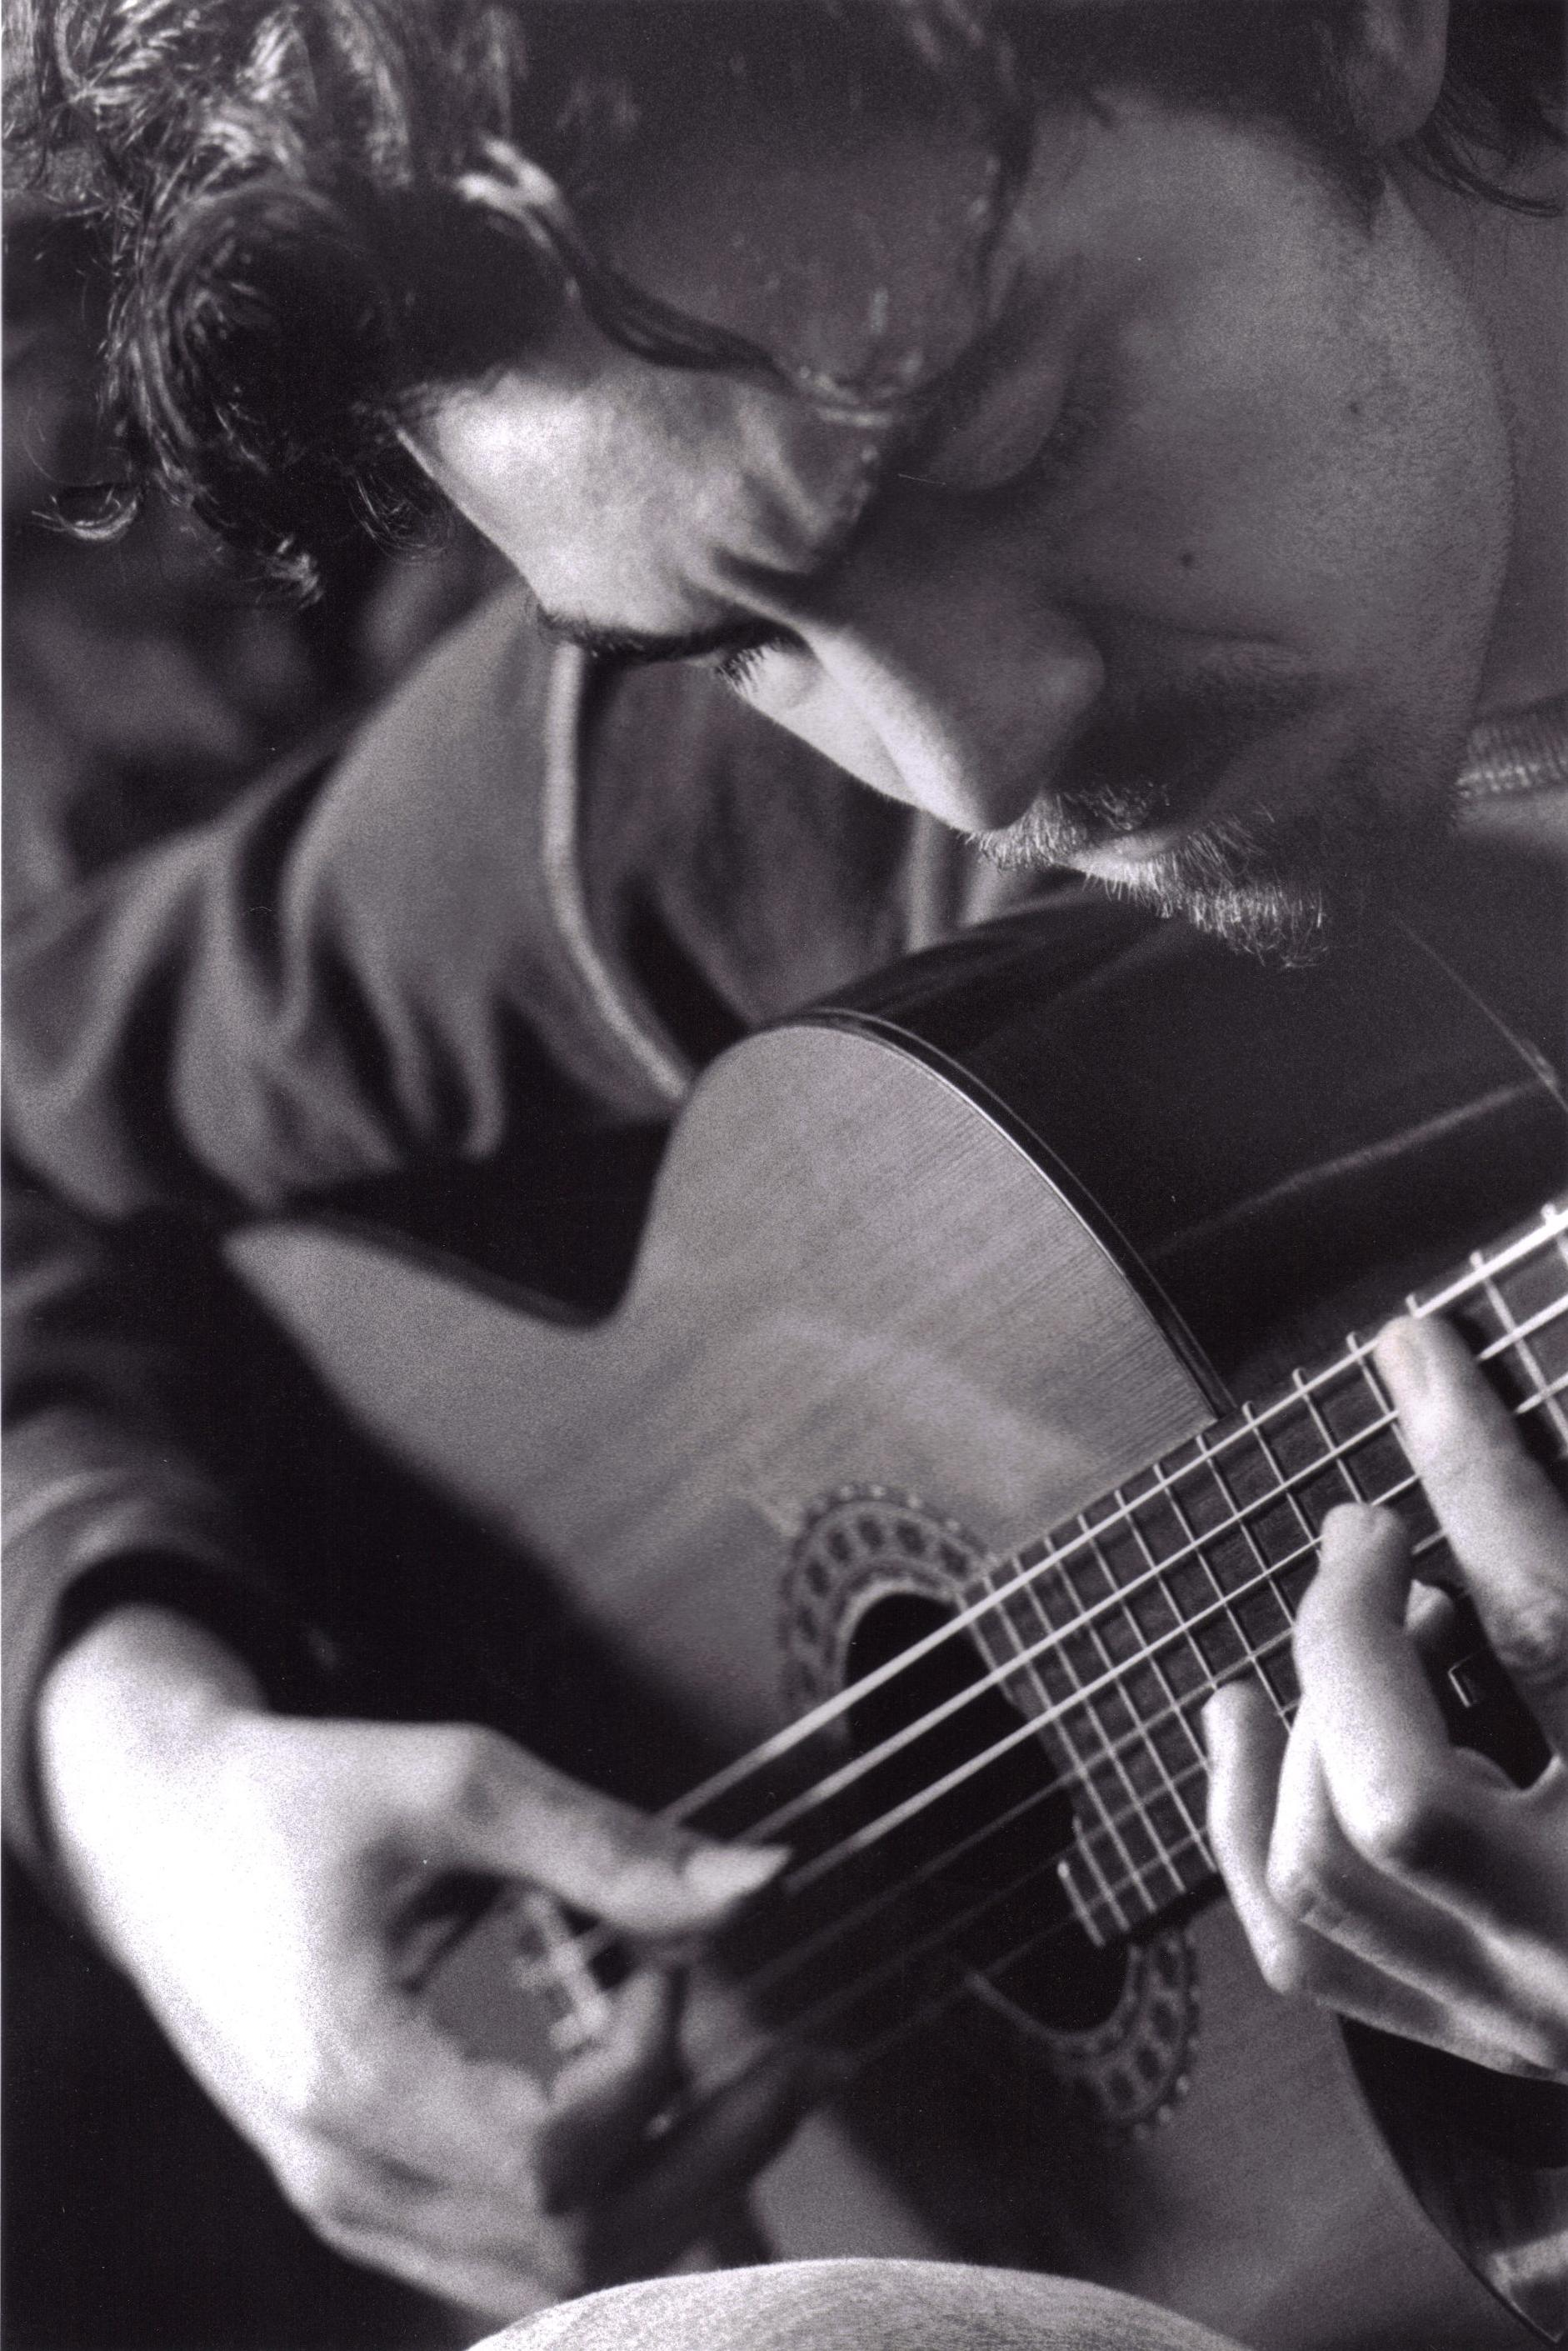 In this black-and-white portrait, a light-skinned male musician plays the guitar.